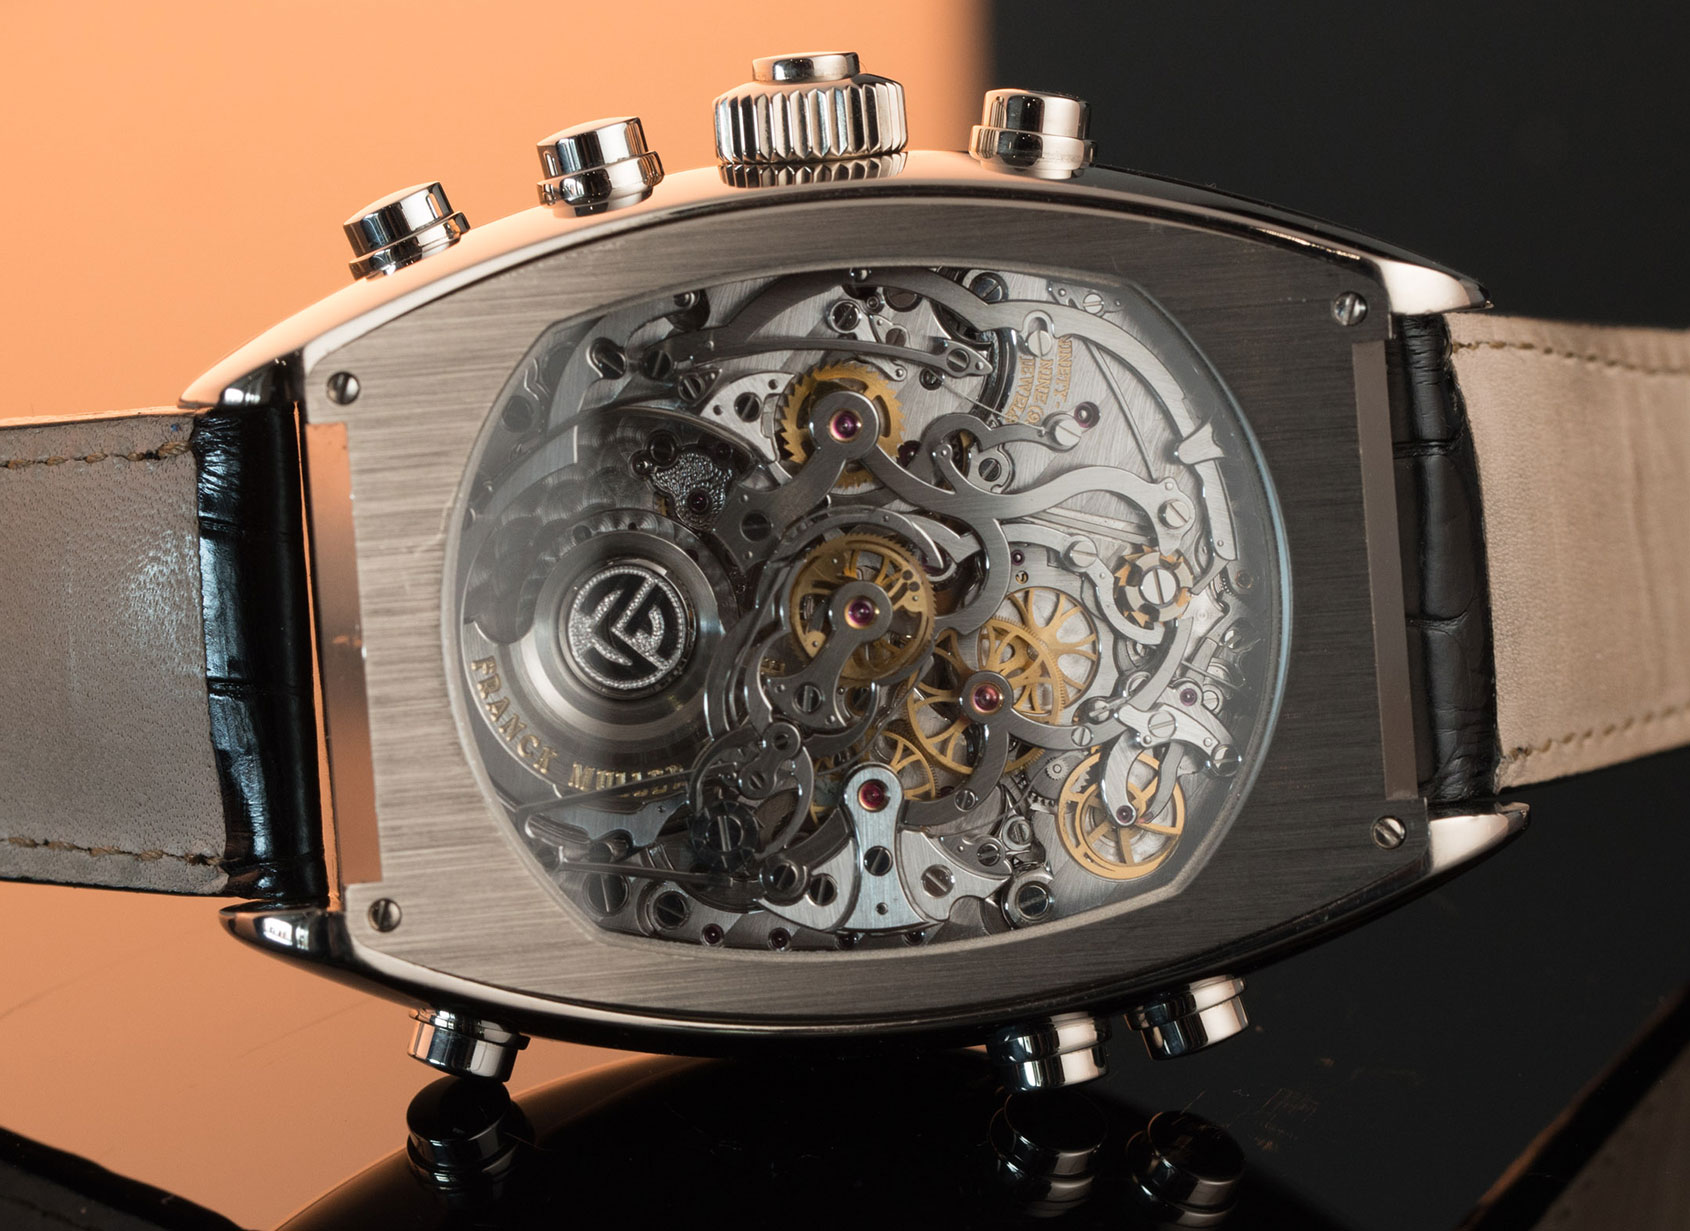 bfedf353065 Franck Muller Aeternitas Mega  Most Complicated Wristwatch Ever ...